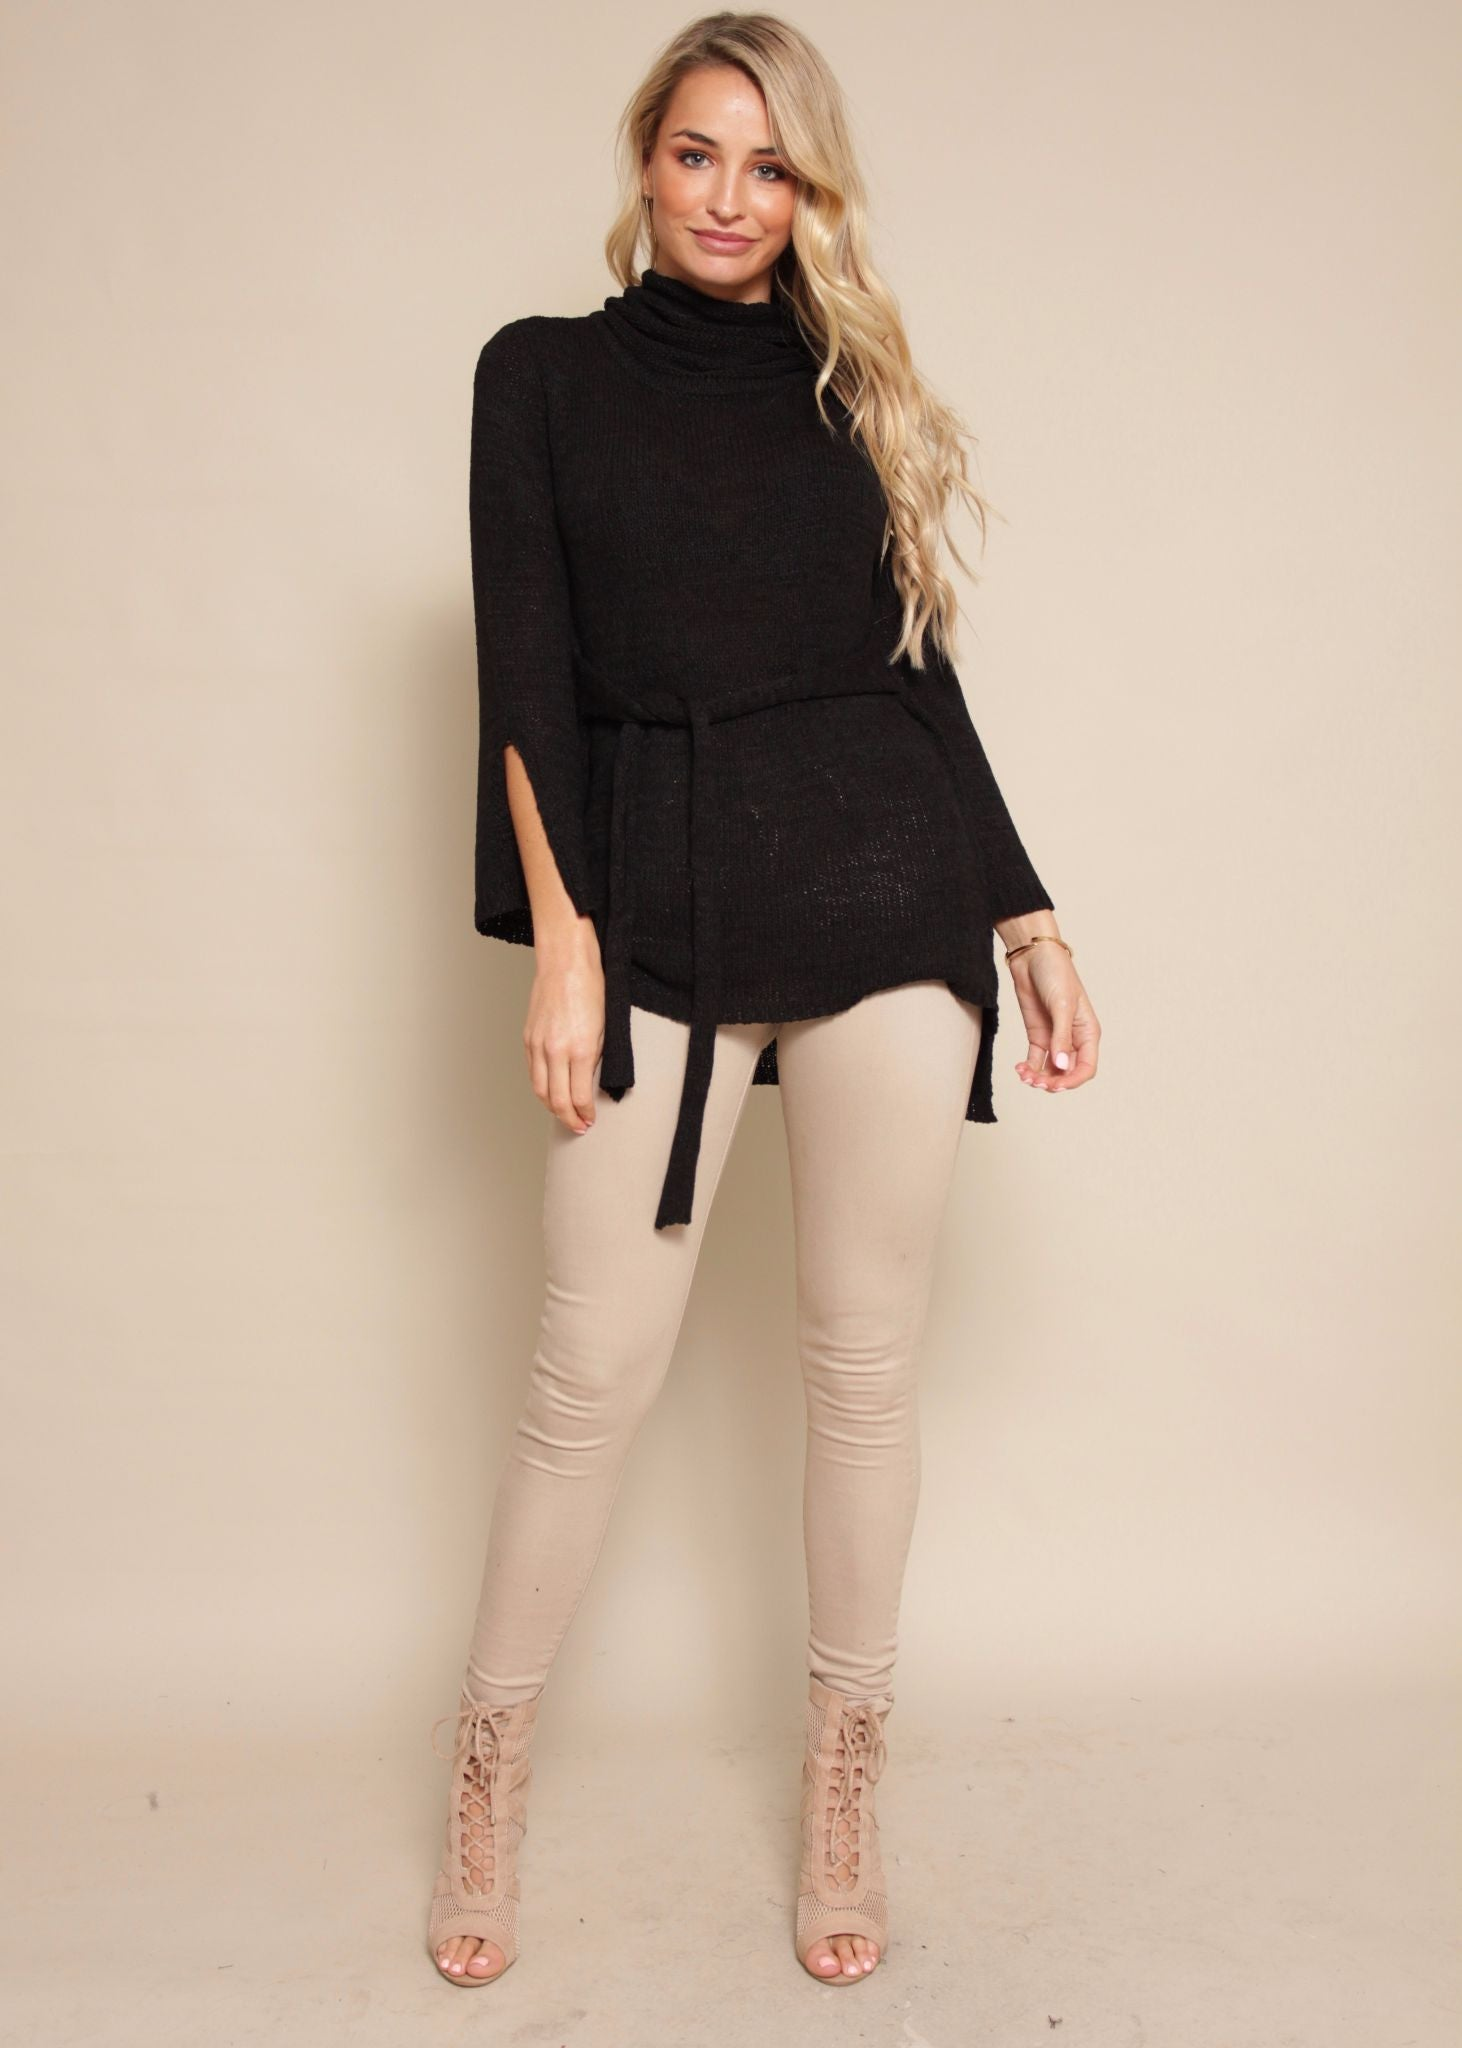 Expecting Company Roll Neck Knit - Black